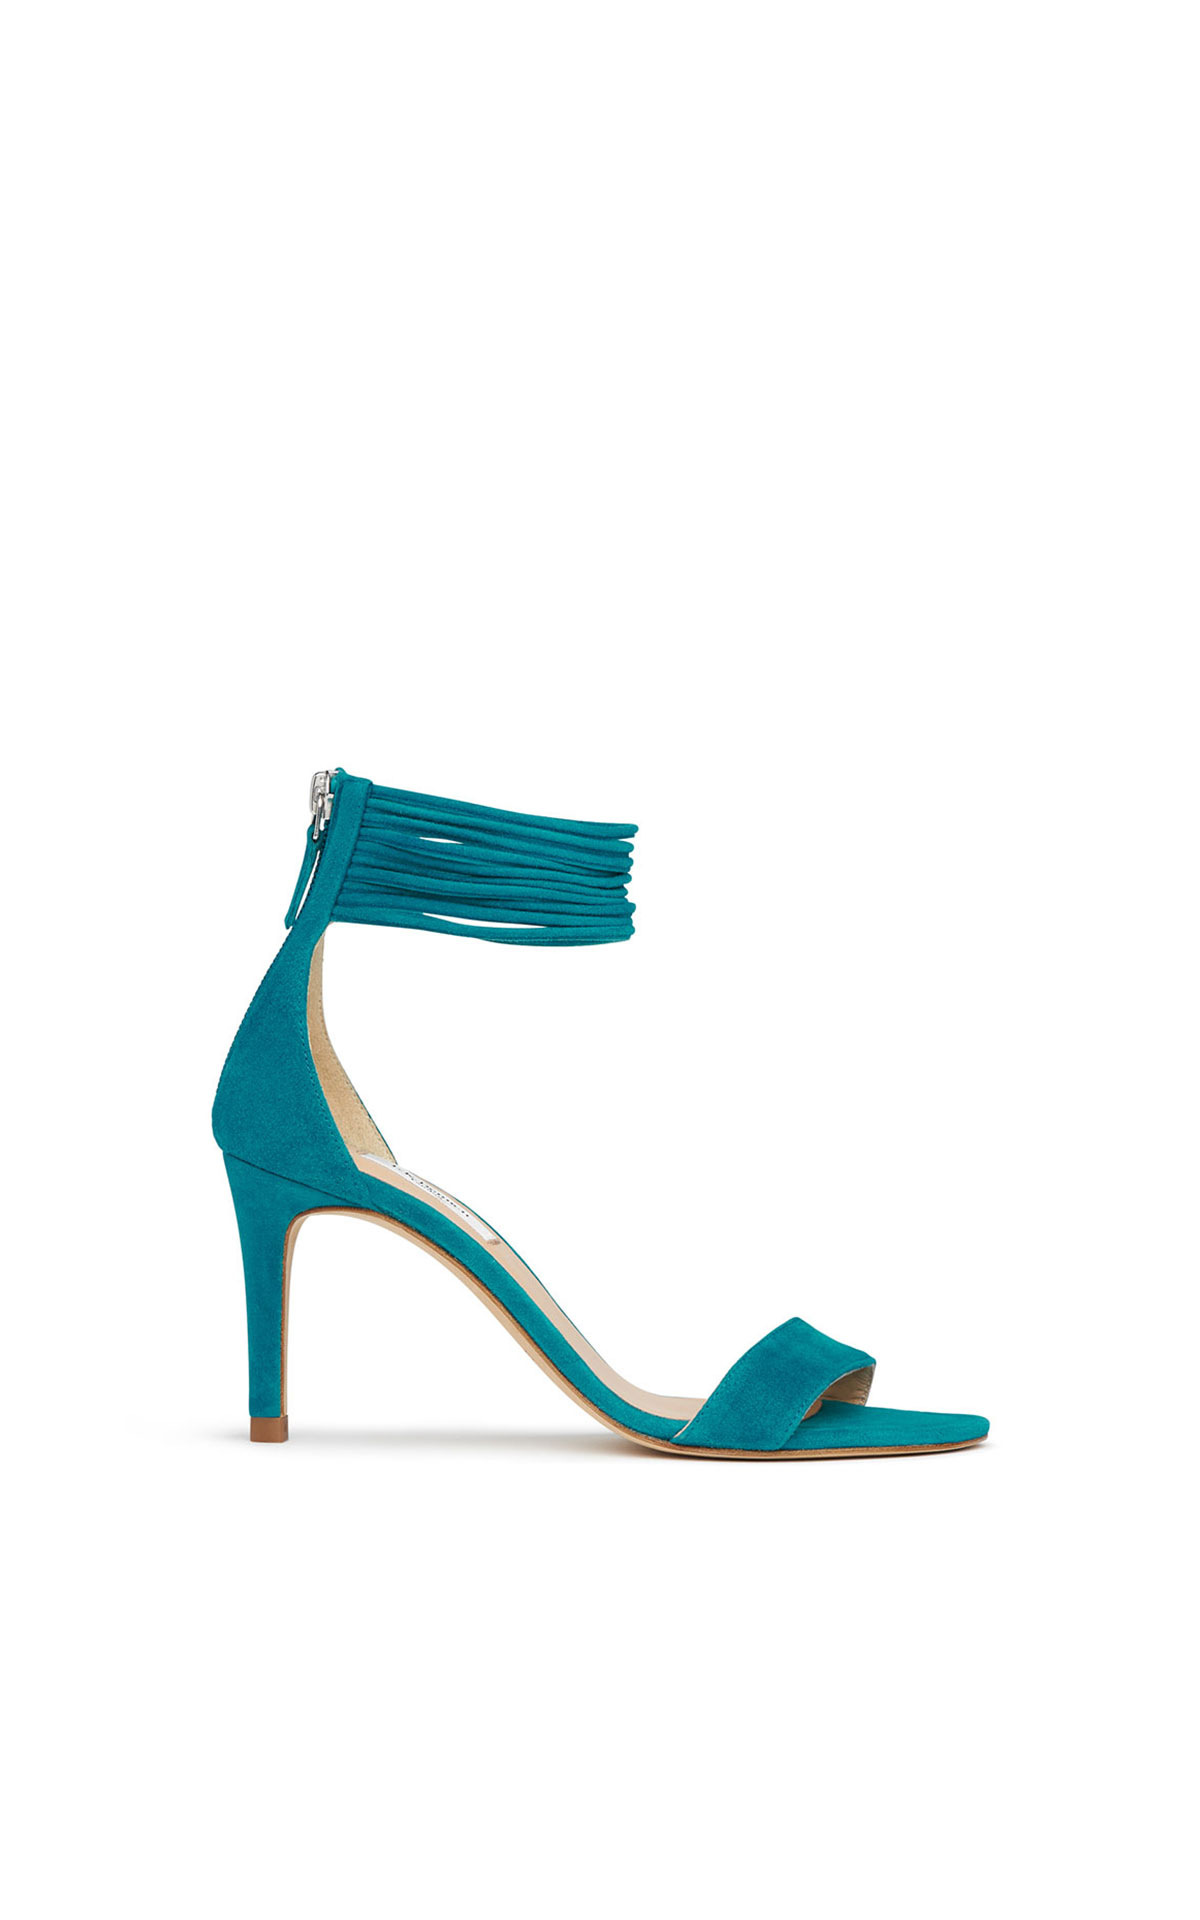 L.K. Bennett Tiffany shoe turquoise from Bicester Village